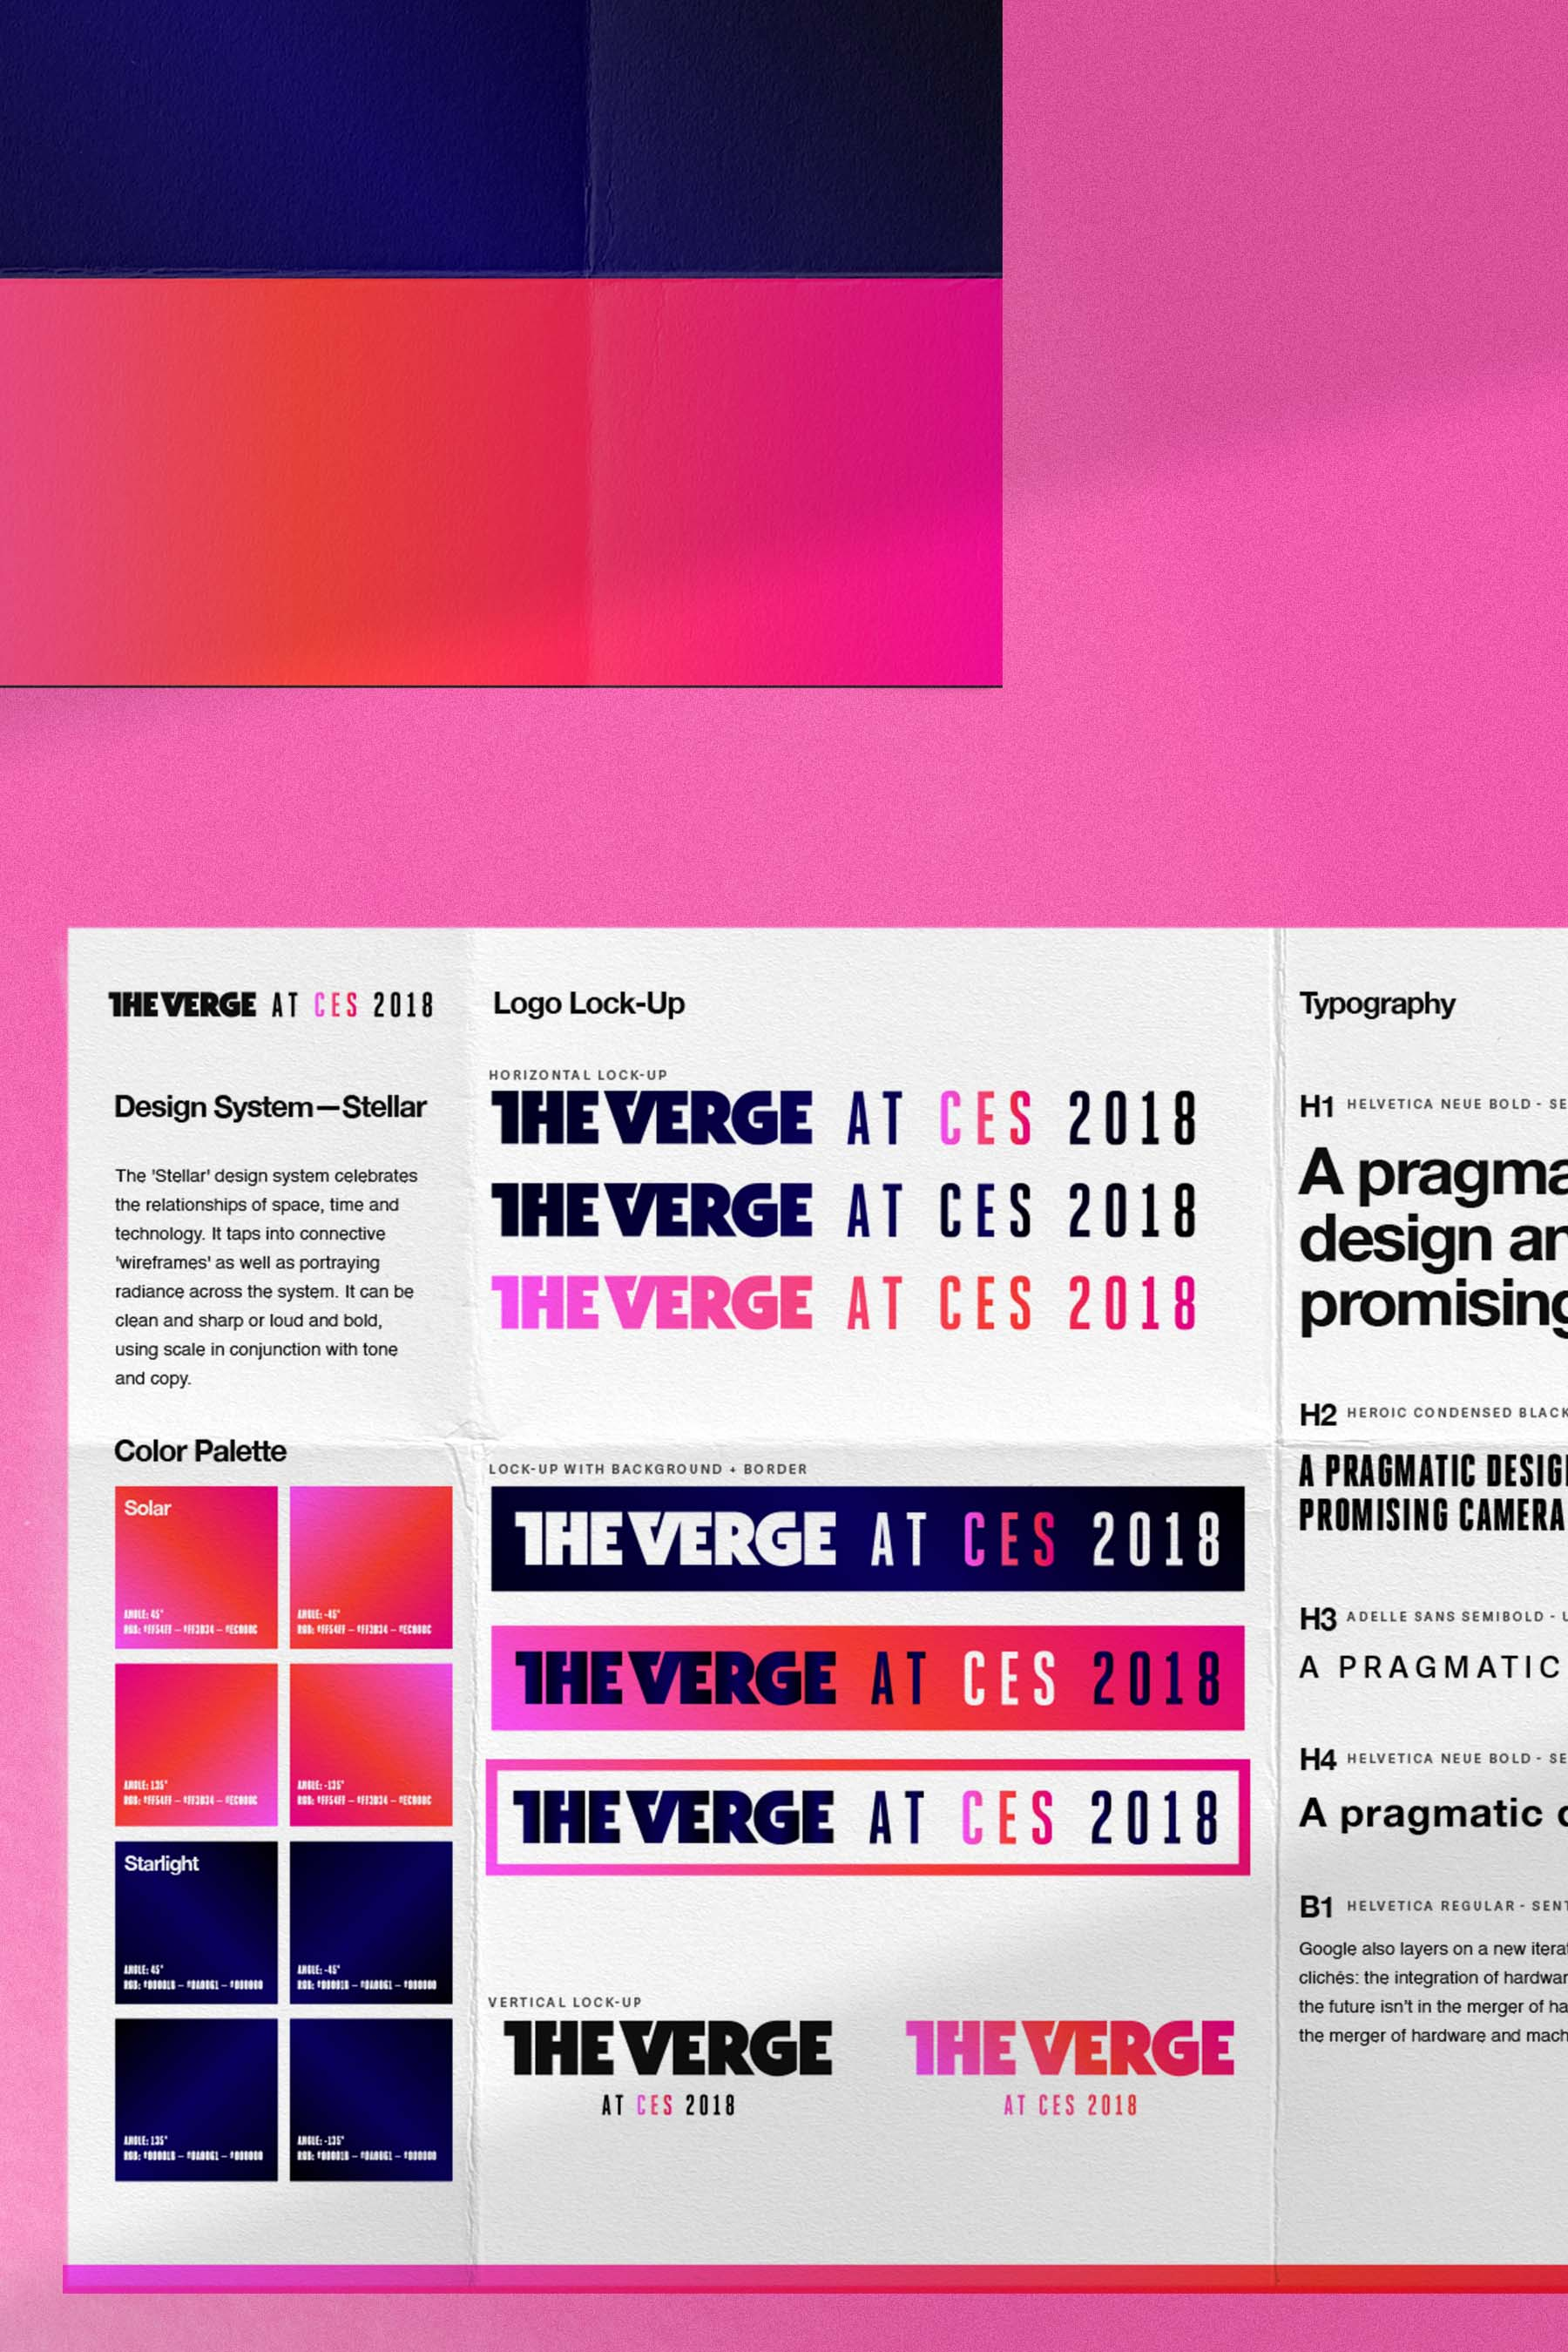 The Verge at CES 2018 visual identity.